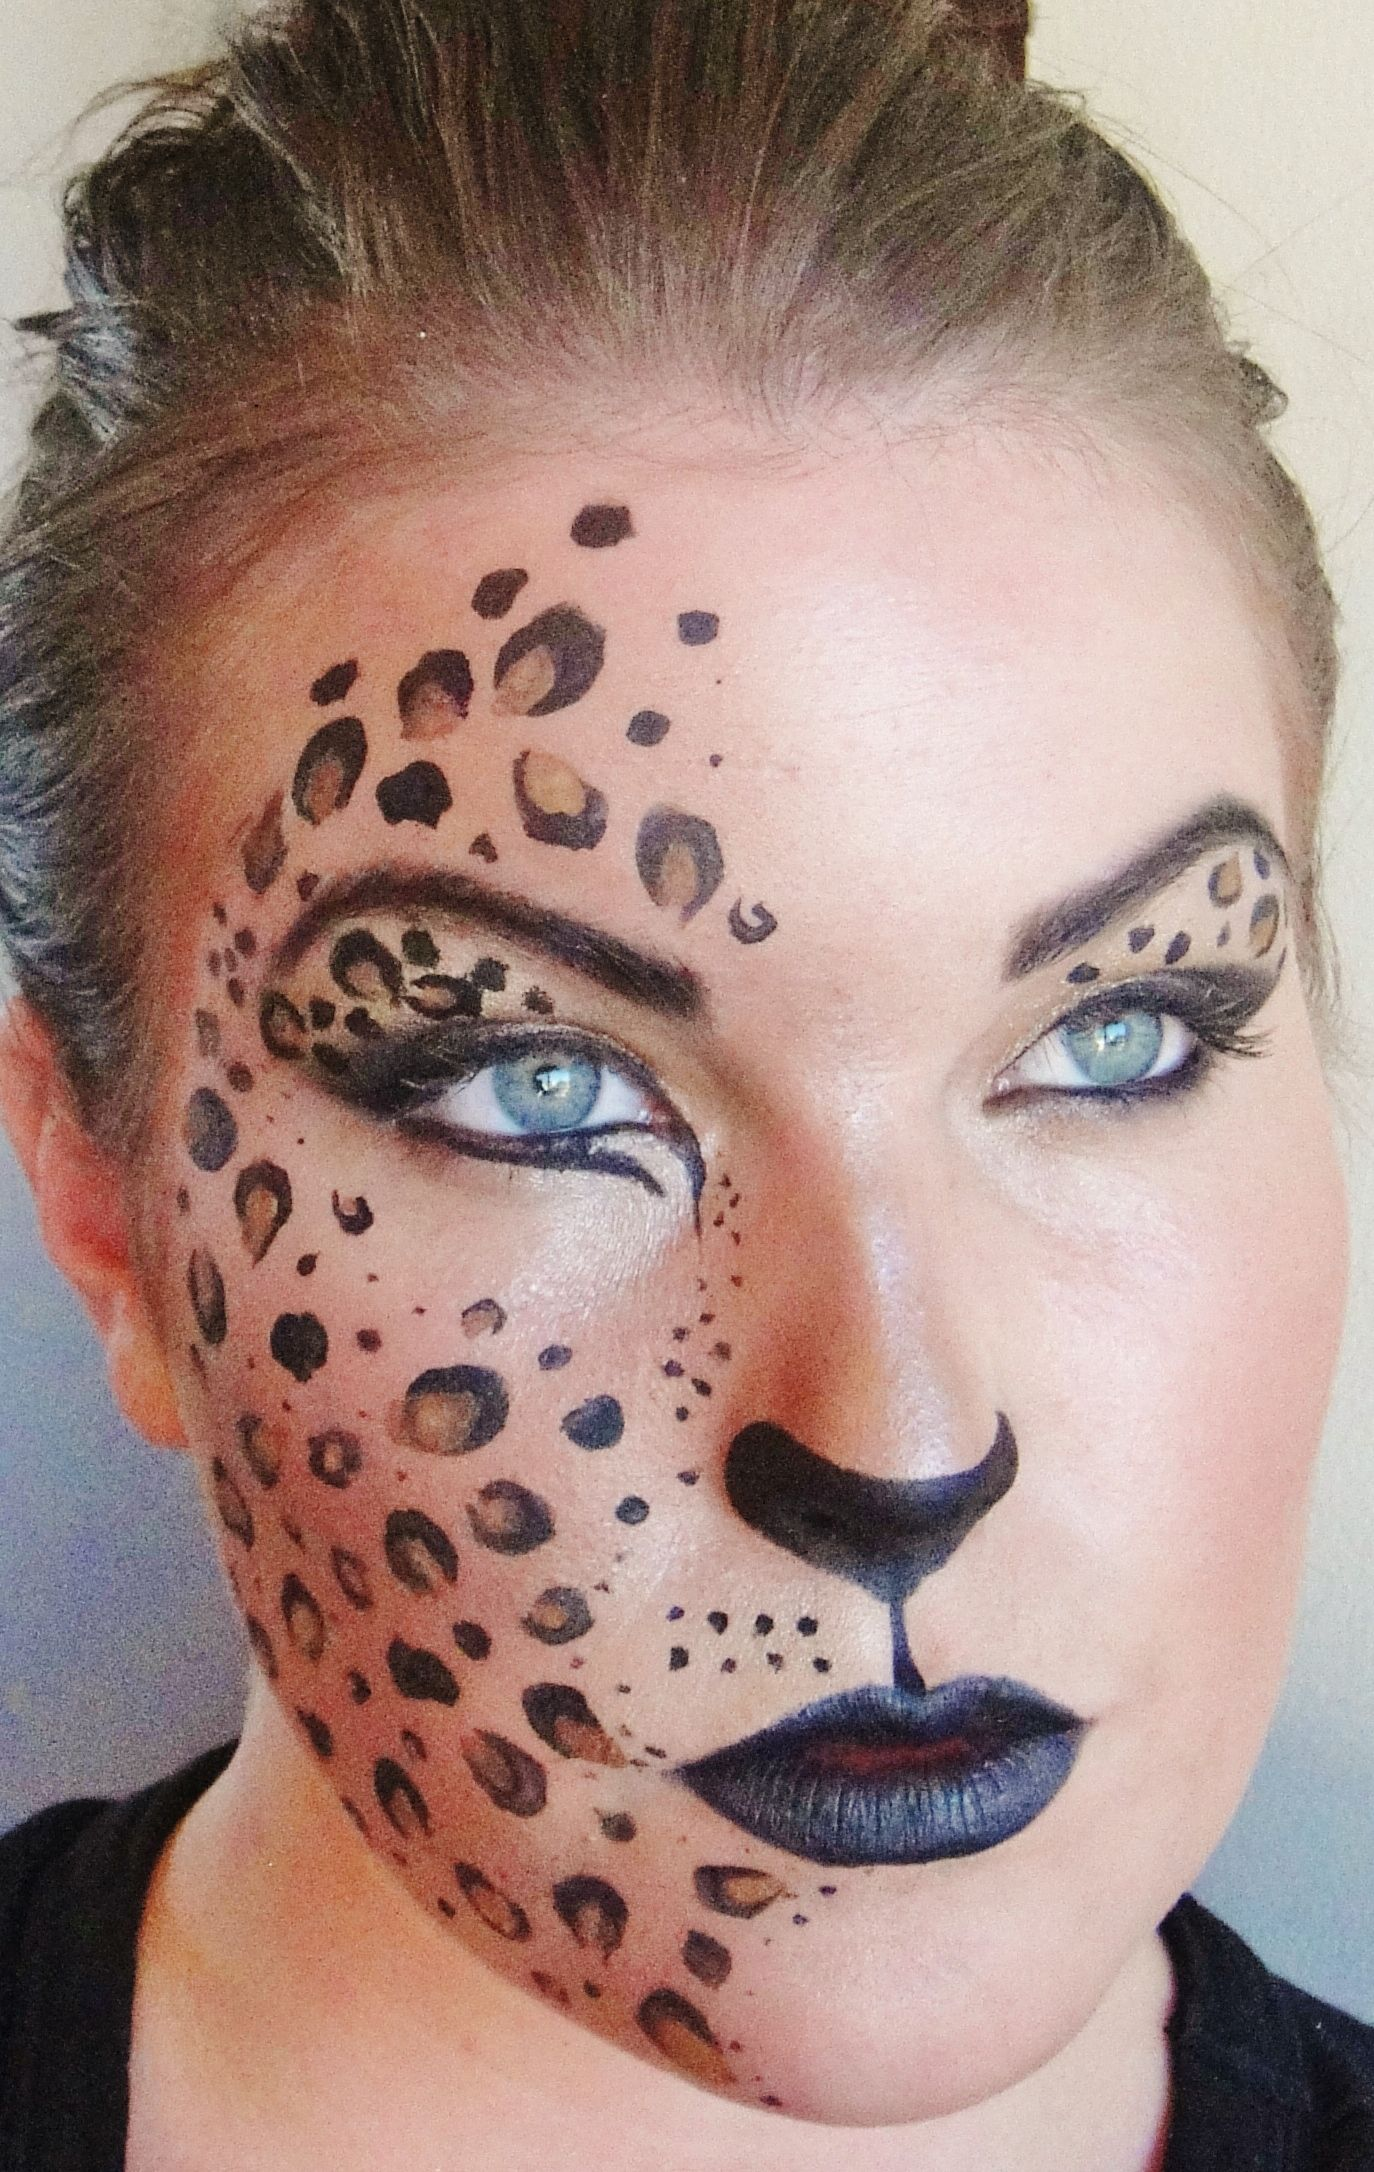 leopard half mask halloween cool creepy mysterious pretty